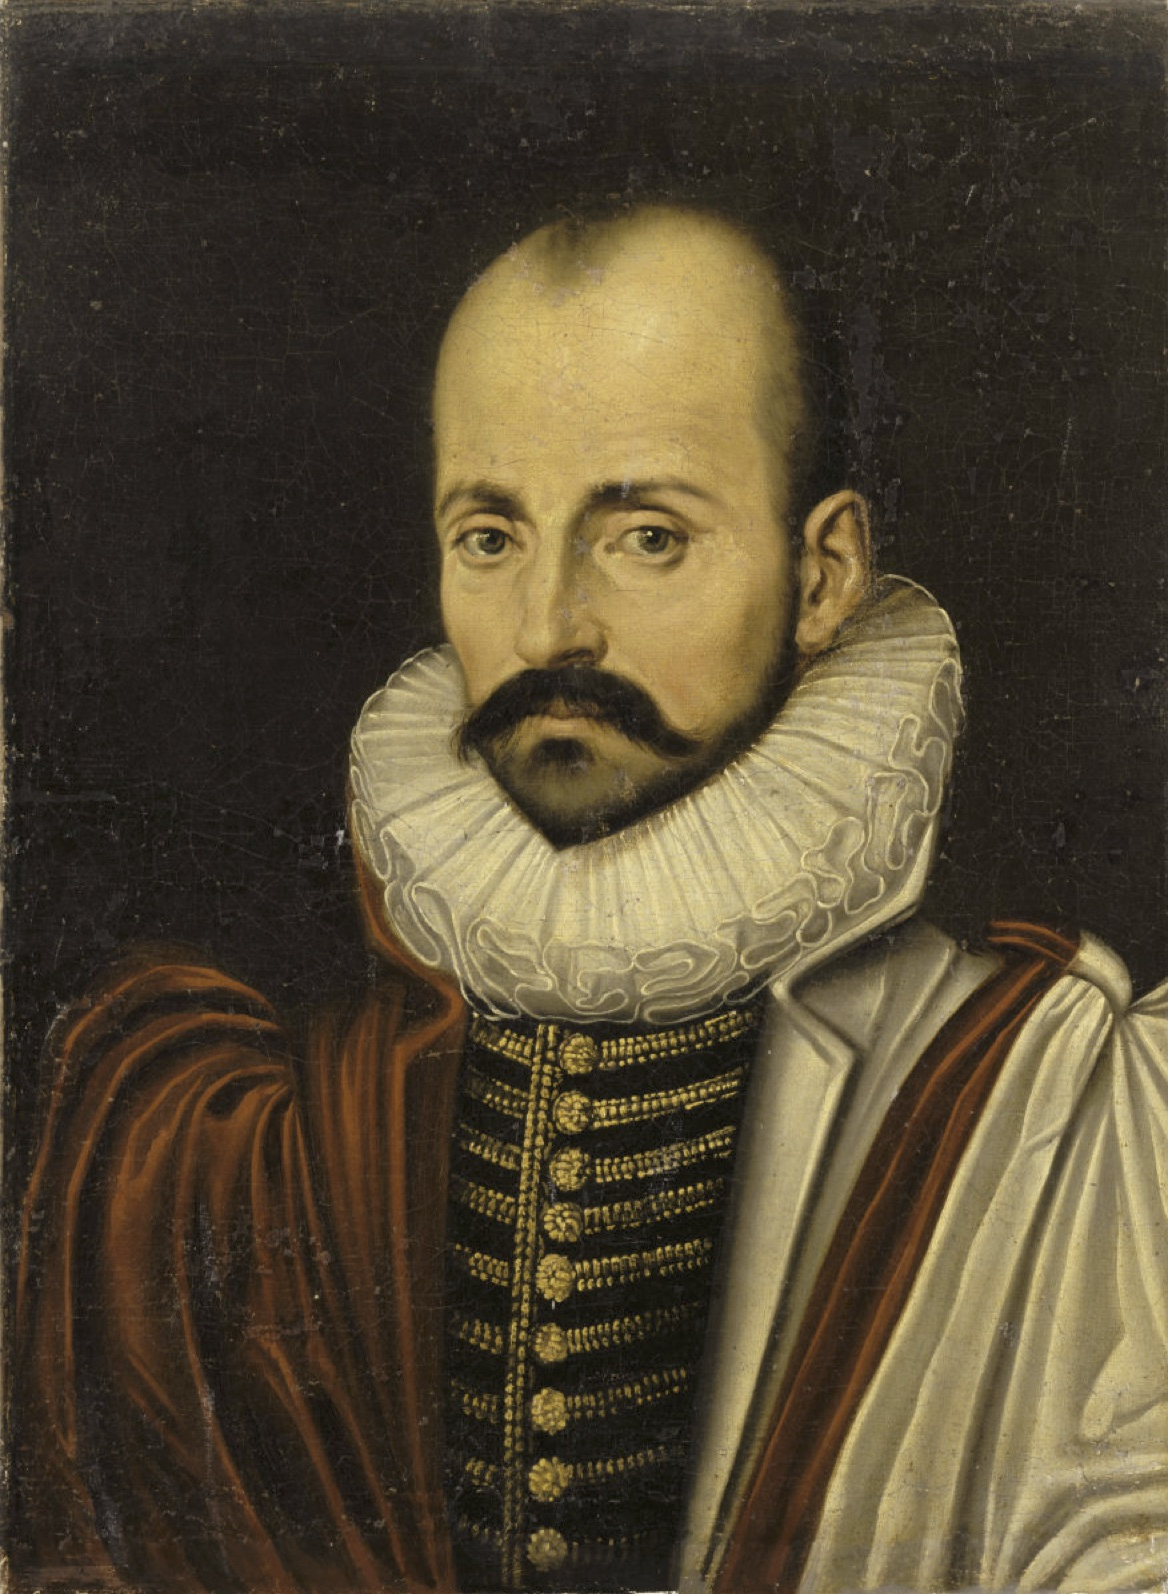 Male-pattern baldness and a big mustache.